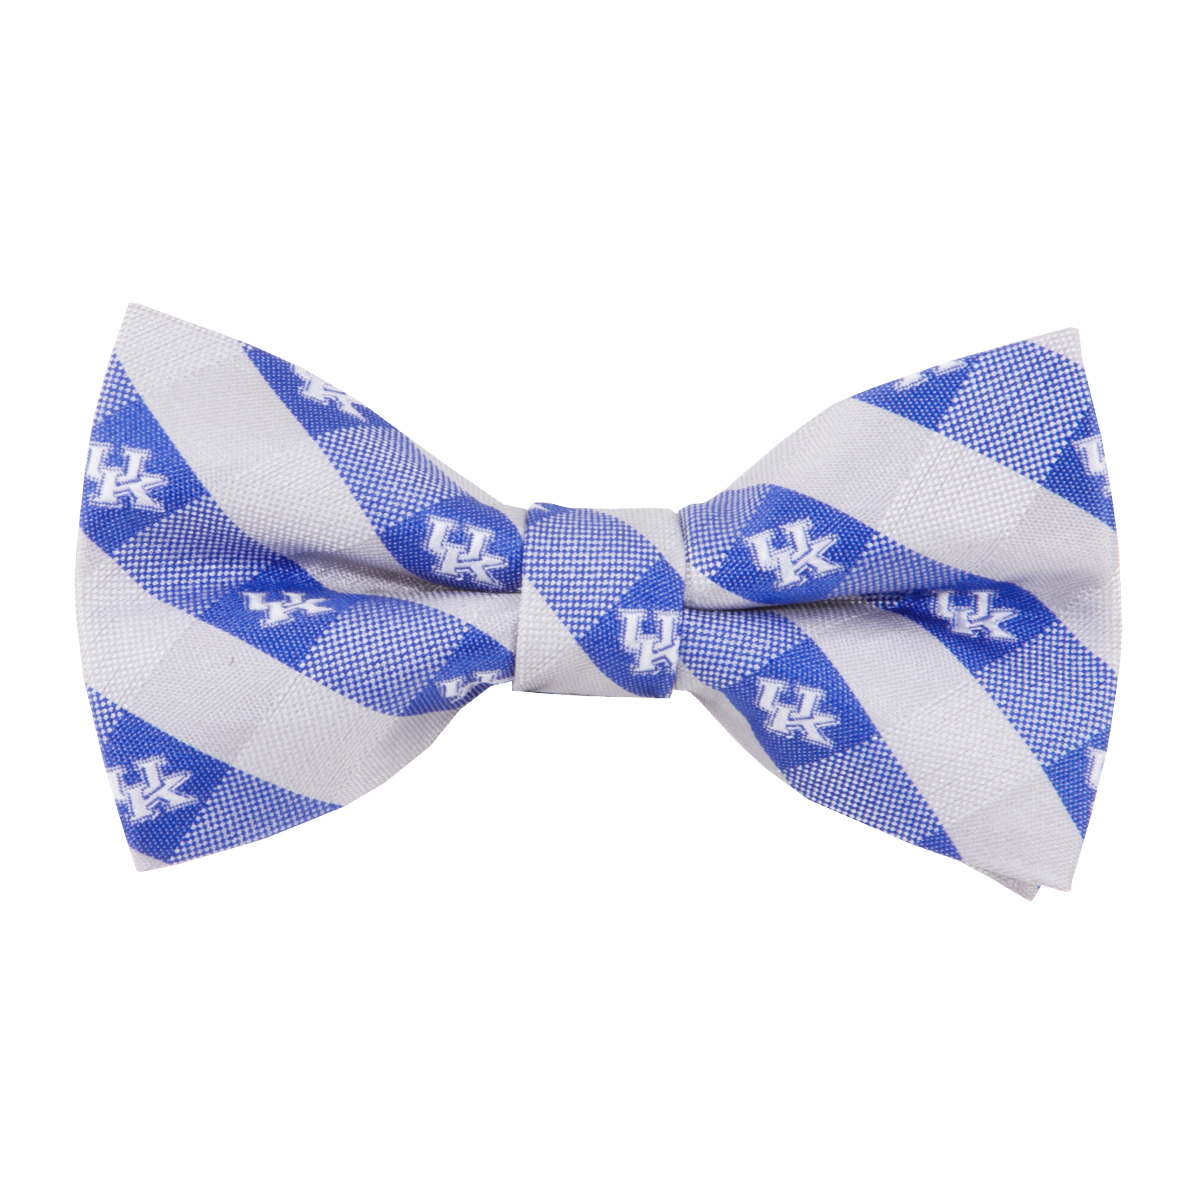 KY-check-bowtie